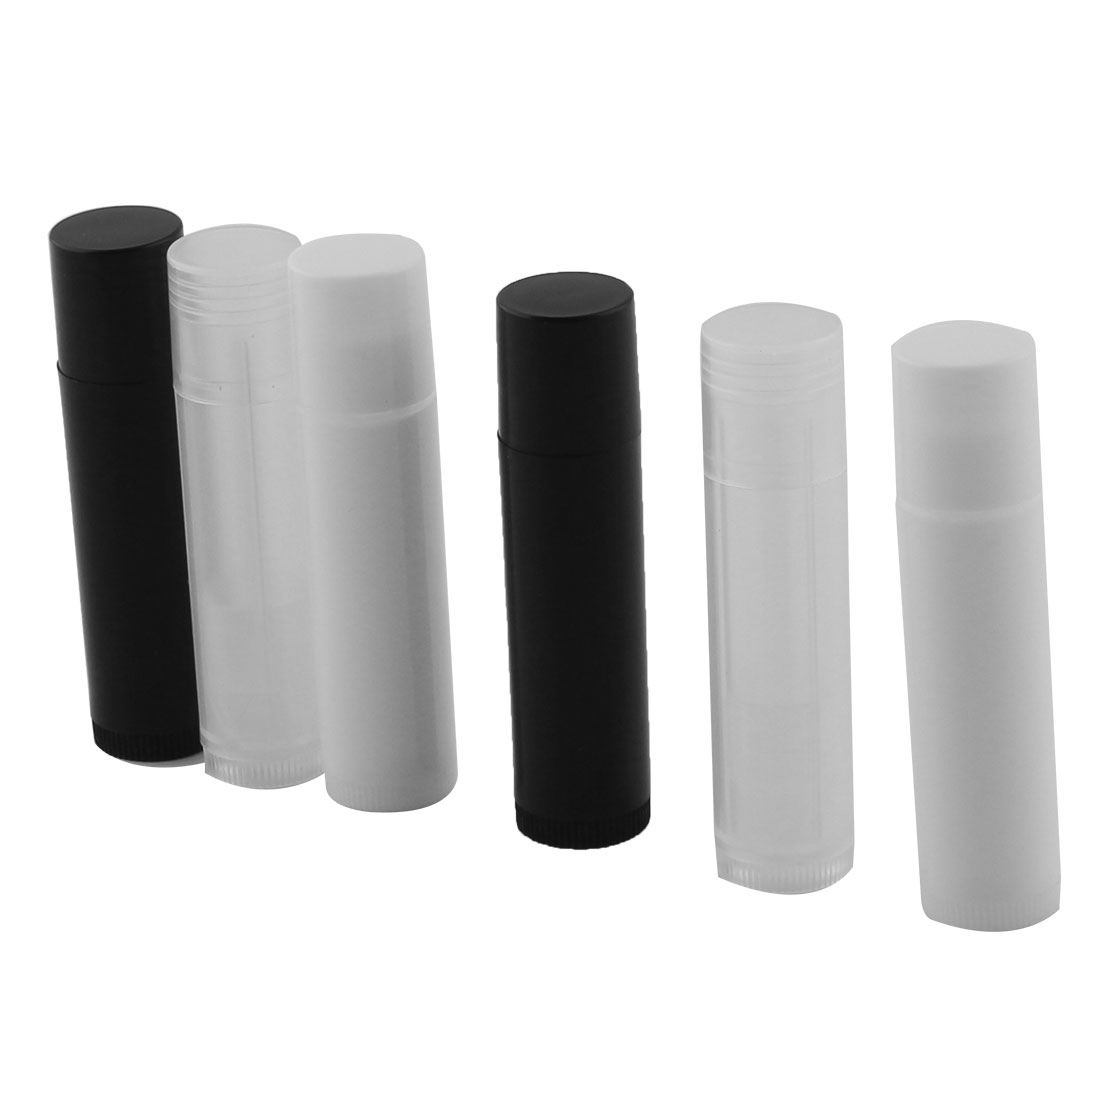 Women Plastic Empty Lip Balm Tube Lipstick Chapstick Container Assorted Color 6 Pcs